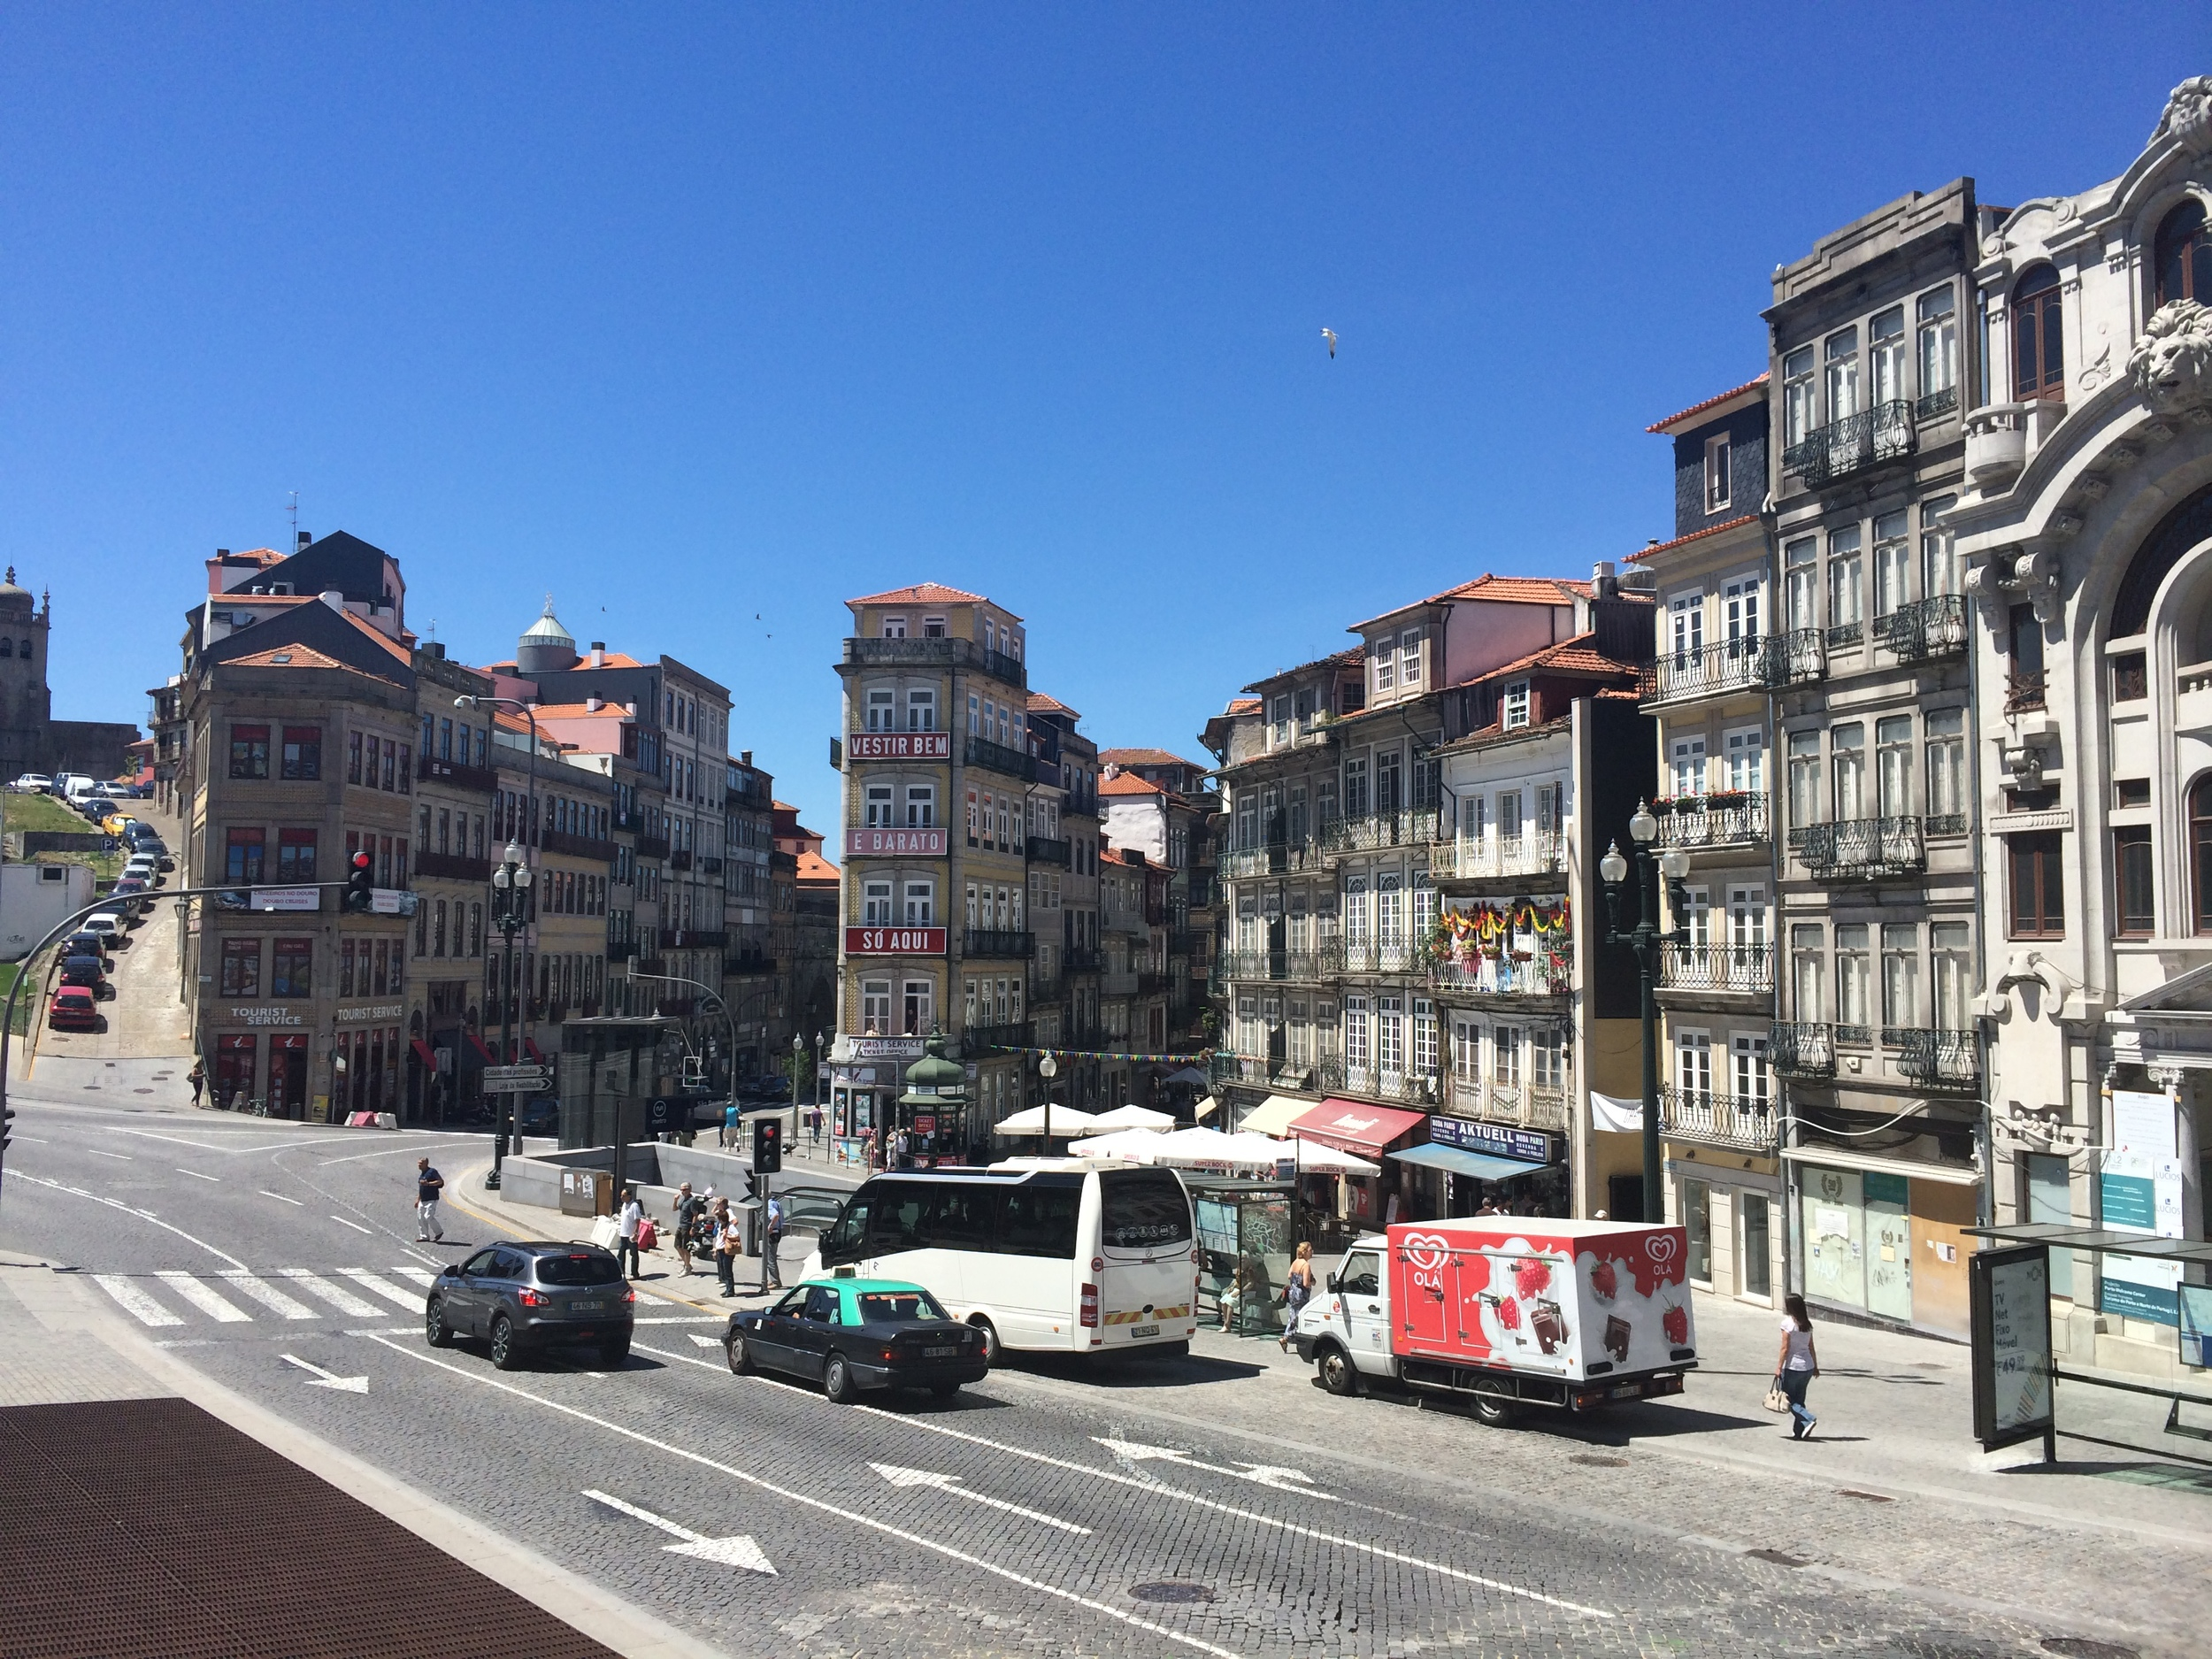 View of Porto from the main train station. Instead of finding my public viewing I got an impromptu tour of Porto.